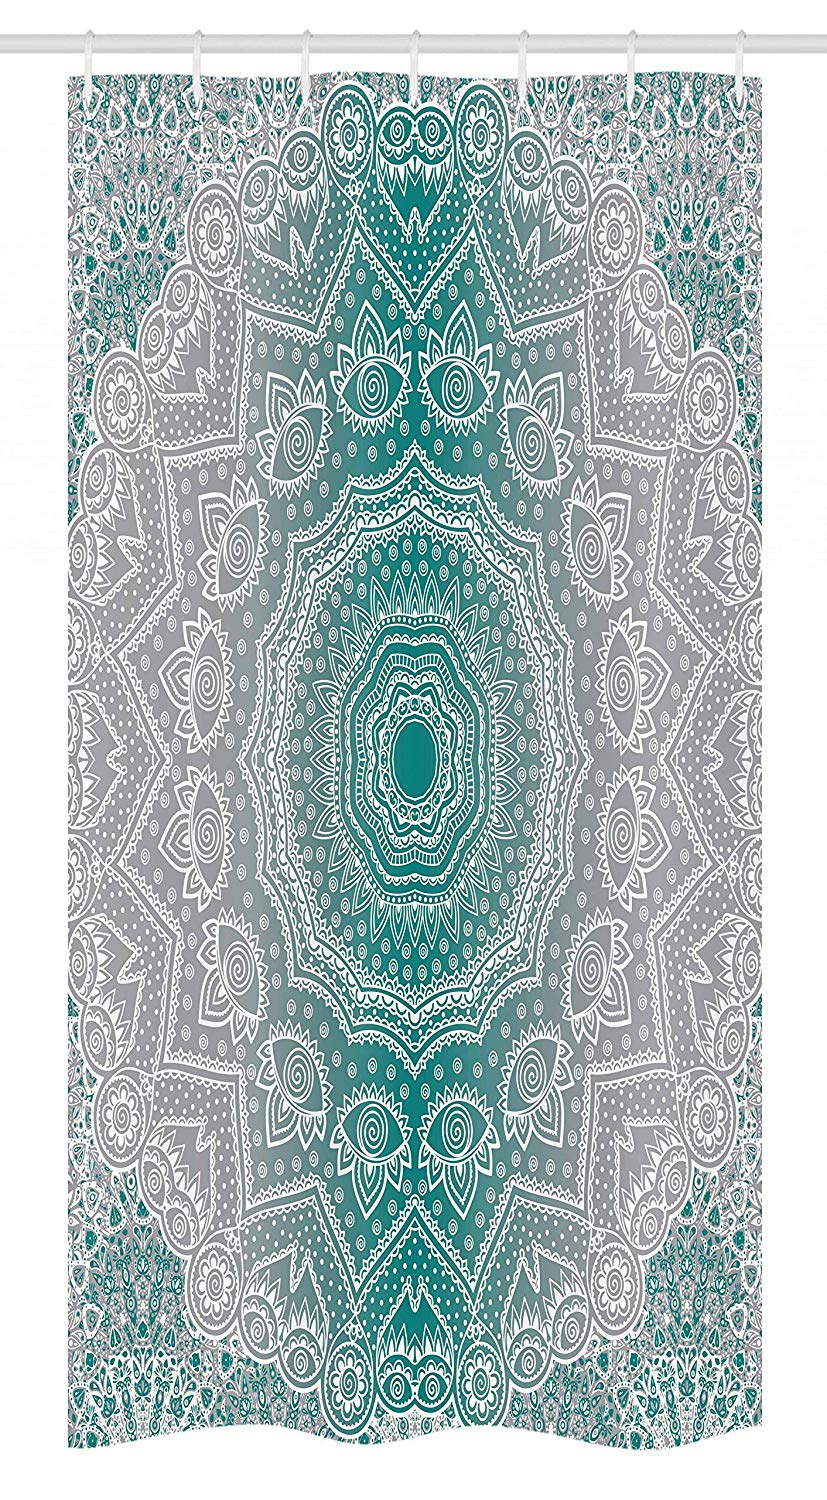 Ambesonne Grey and Teal Stall Shower Curtain, Mandala Ombre Geometry Occult Pattern with Flower Lines Display Artwork, Fabric Bathroom Decor Set with Hooks, 36